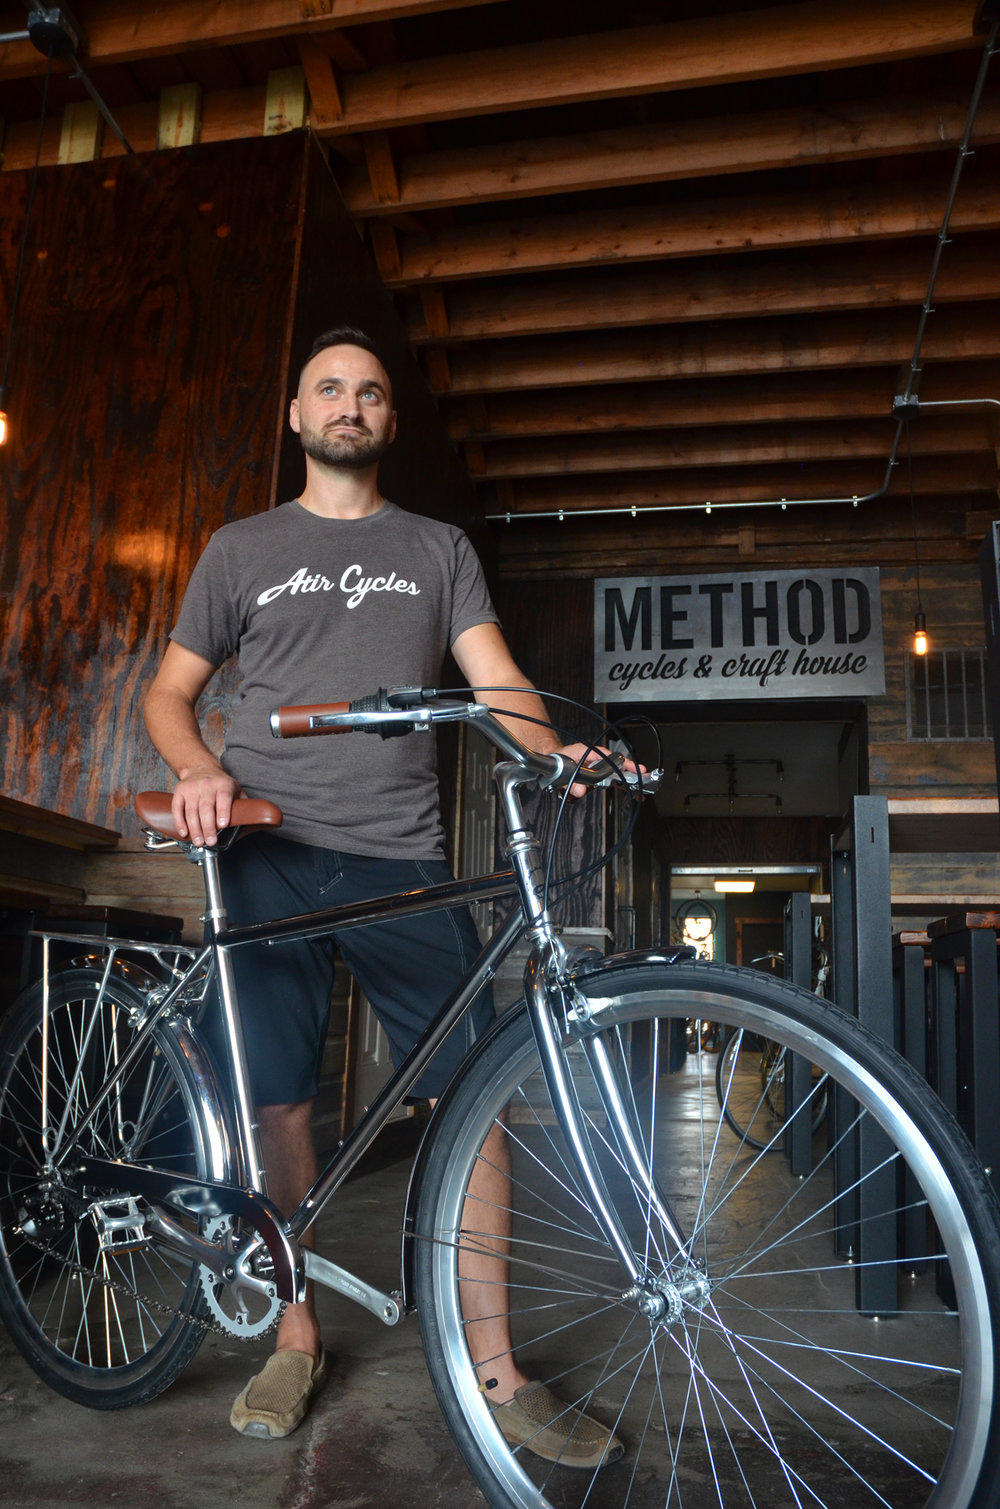 Method Cycles and Craft House - Bike Raffle Owners Jason Brummels and Sarah Dunbar have donated a beautiful Atir Cycle City 8-speed Bike. It will be sized to fit the winner and available in Black or Chrome. $499 Retail Price with a lifetime warranty on frame and fork. Visit the Method website: https://methodcycles.com/